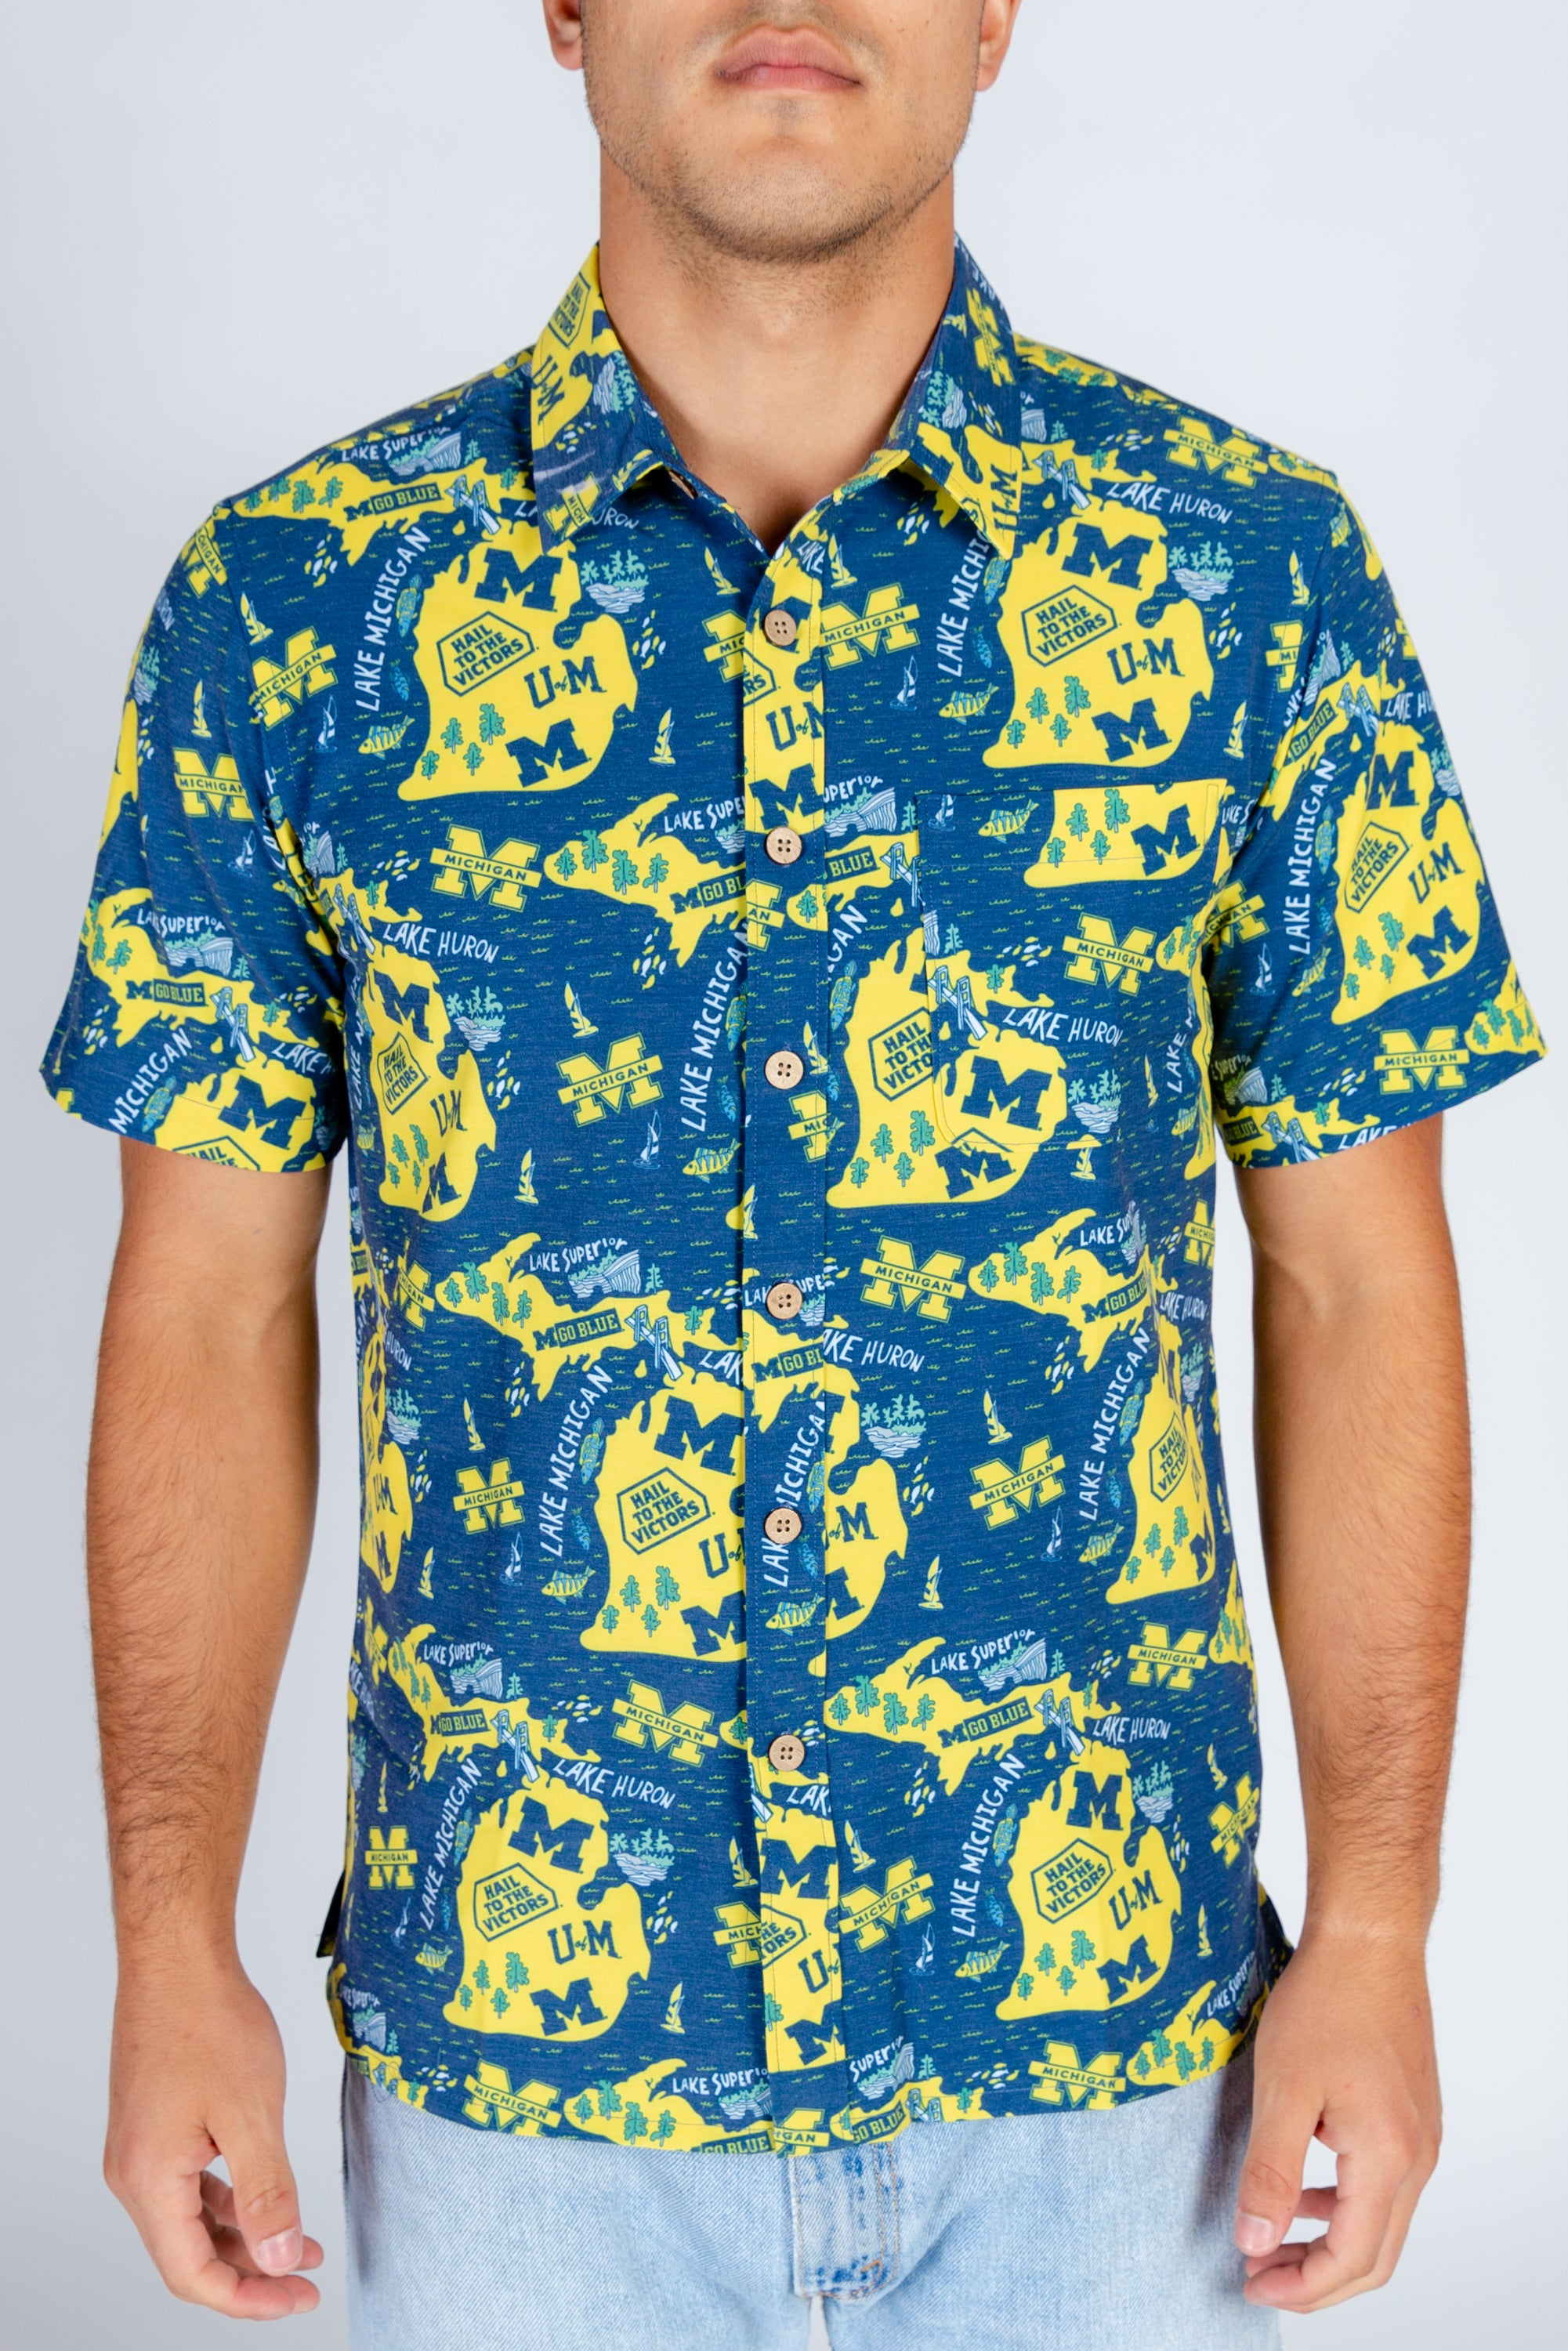 Michigan Tropical Blue and Yellow Shirt